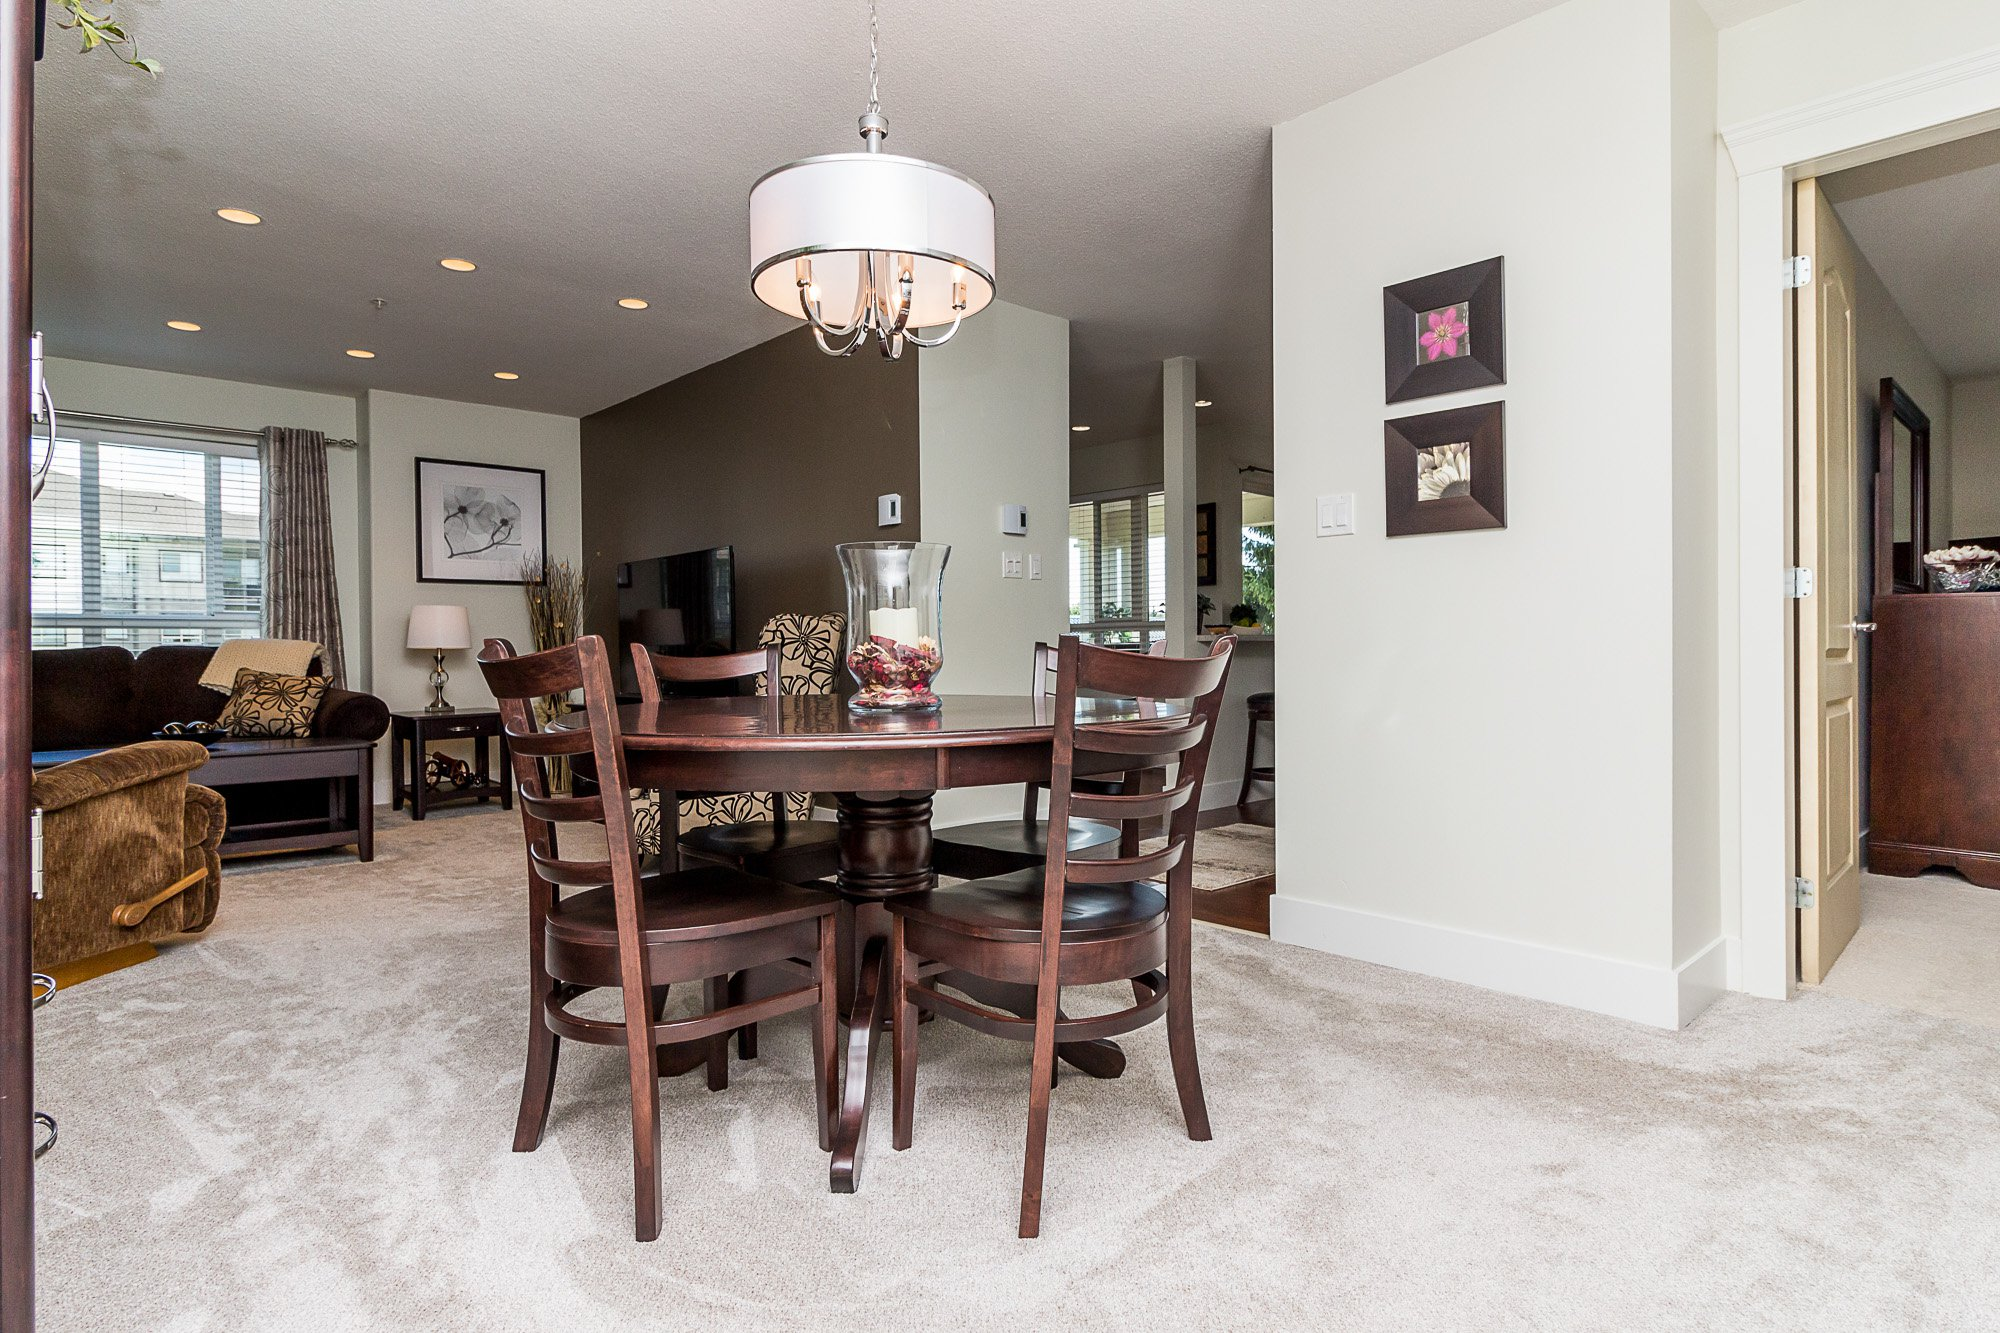 """Photo 6: Photos: 412 22022 49 Avenue in Langley: Murrayville Condo for sale in """"Murray Green"""" : MLS®# R2266359"""